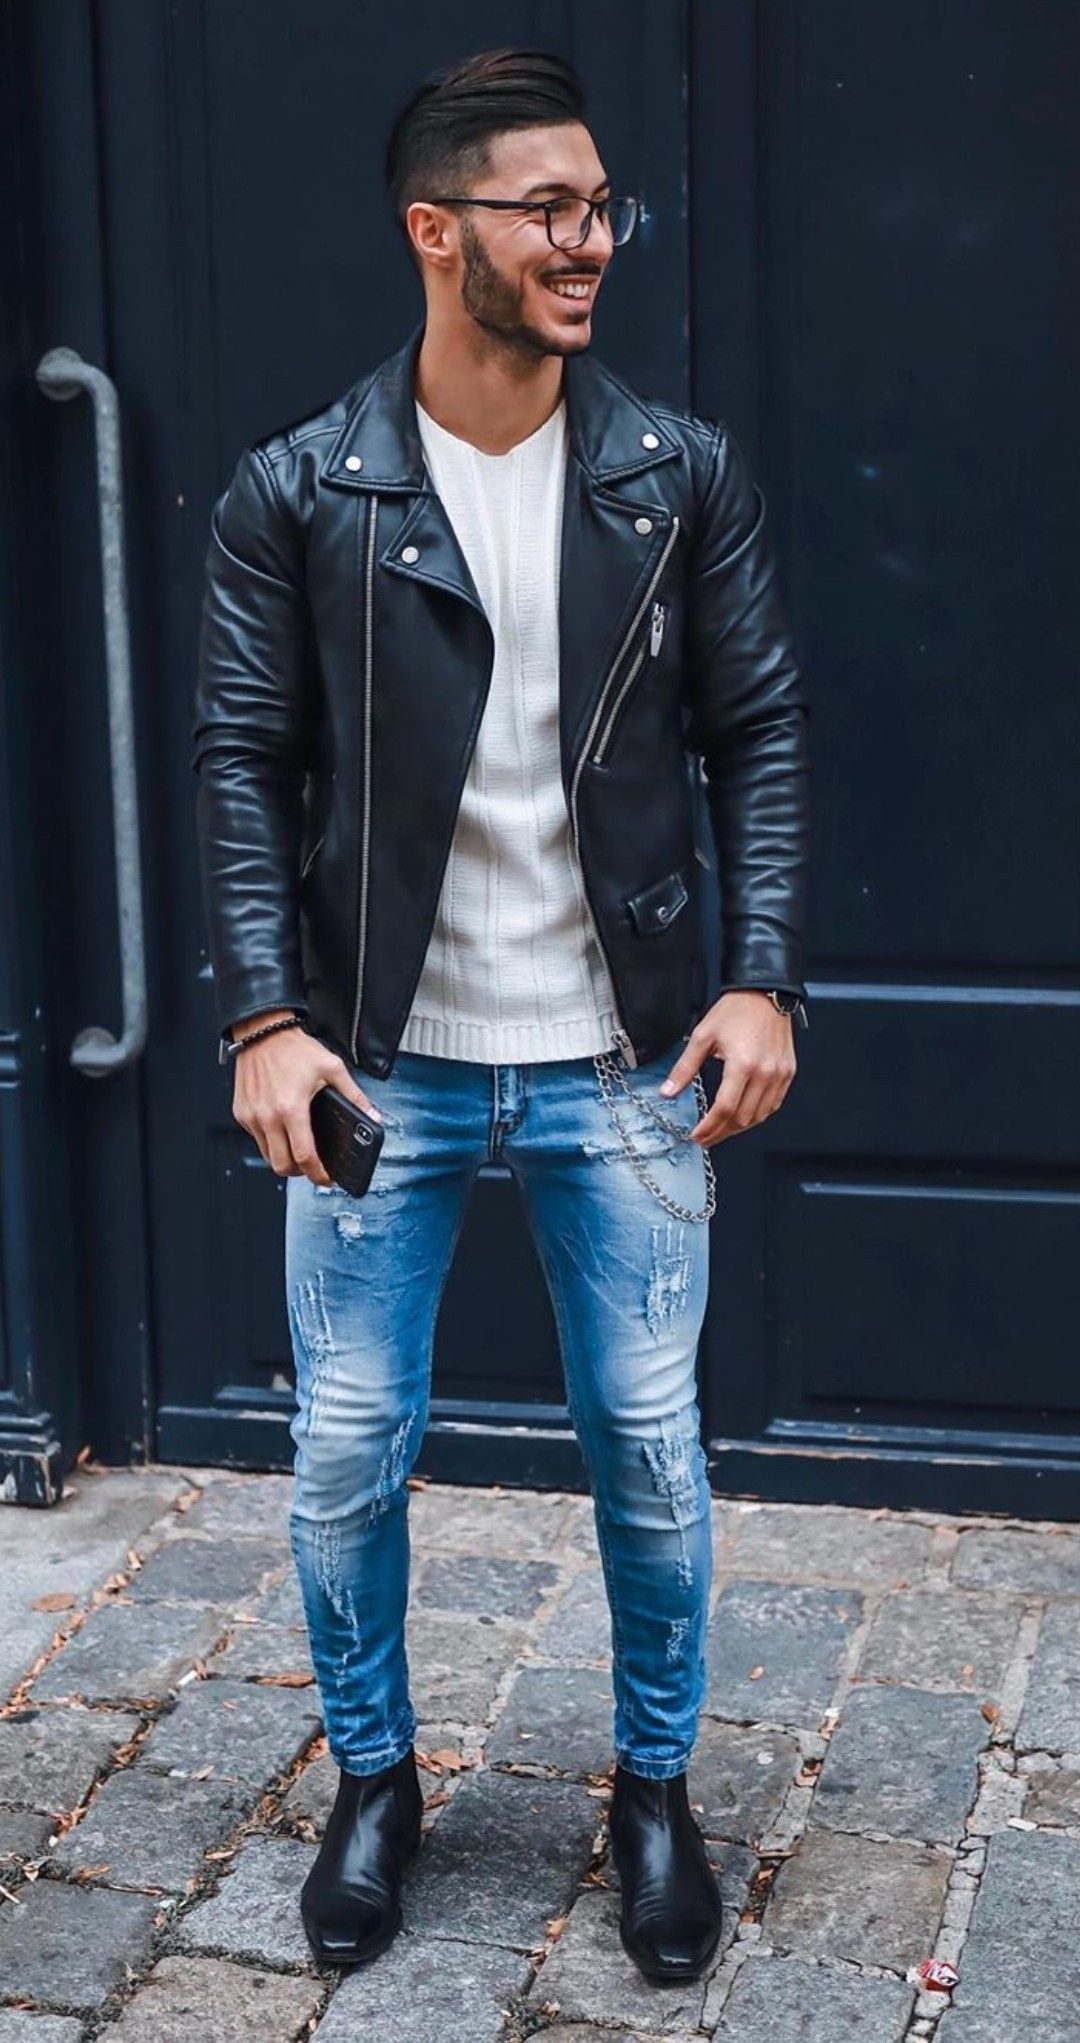 Pin By Erik Hendriksen On Denim Life Leather Jacket Outfits Leather Jacket Black Leather Jacket Outfit [ 2043 x 1080 Pixel ]